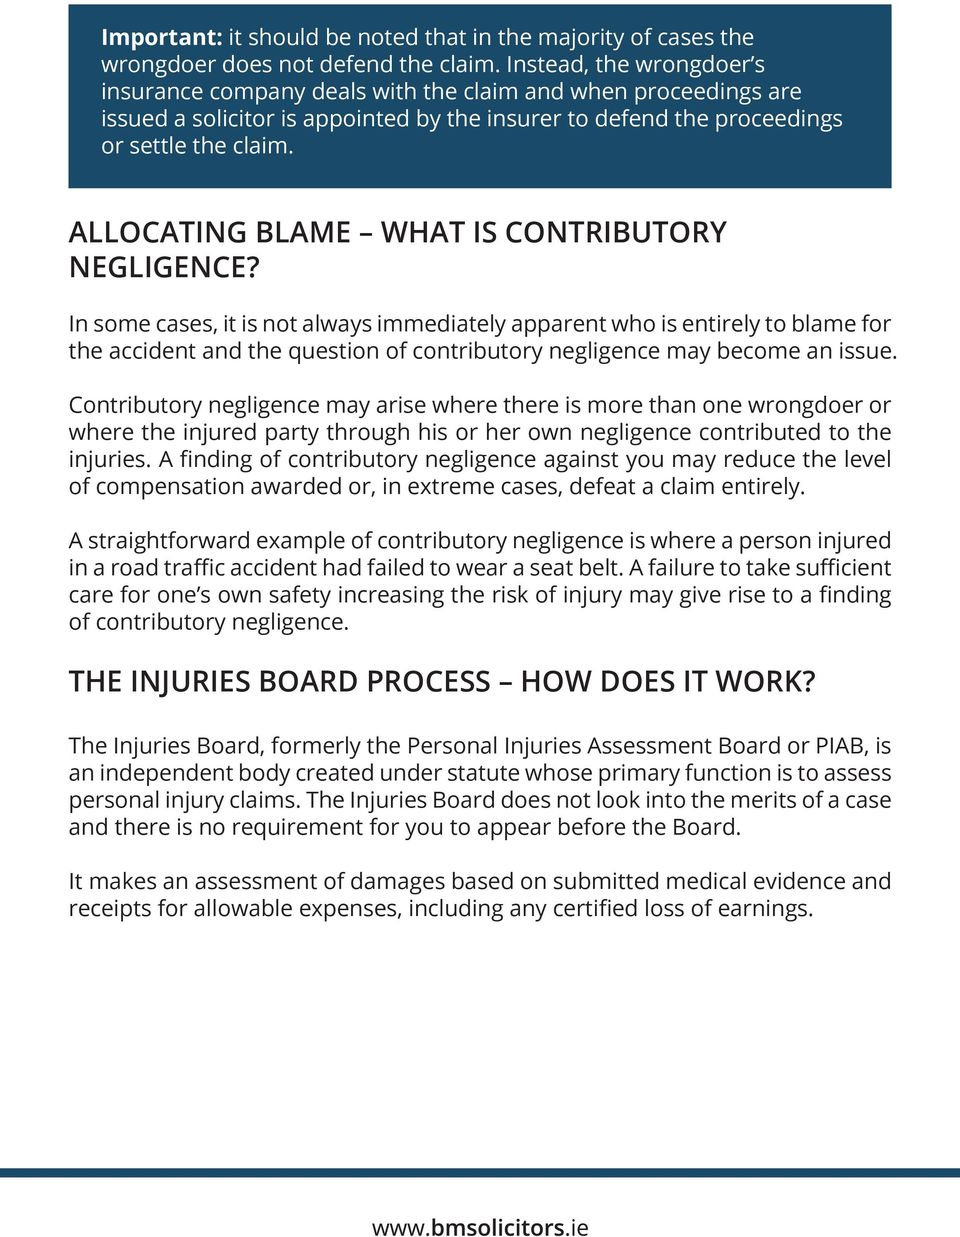 ALLOCATING BLAME WHAT IS CONTRIBUTORY NEGLIGENCE?